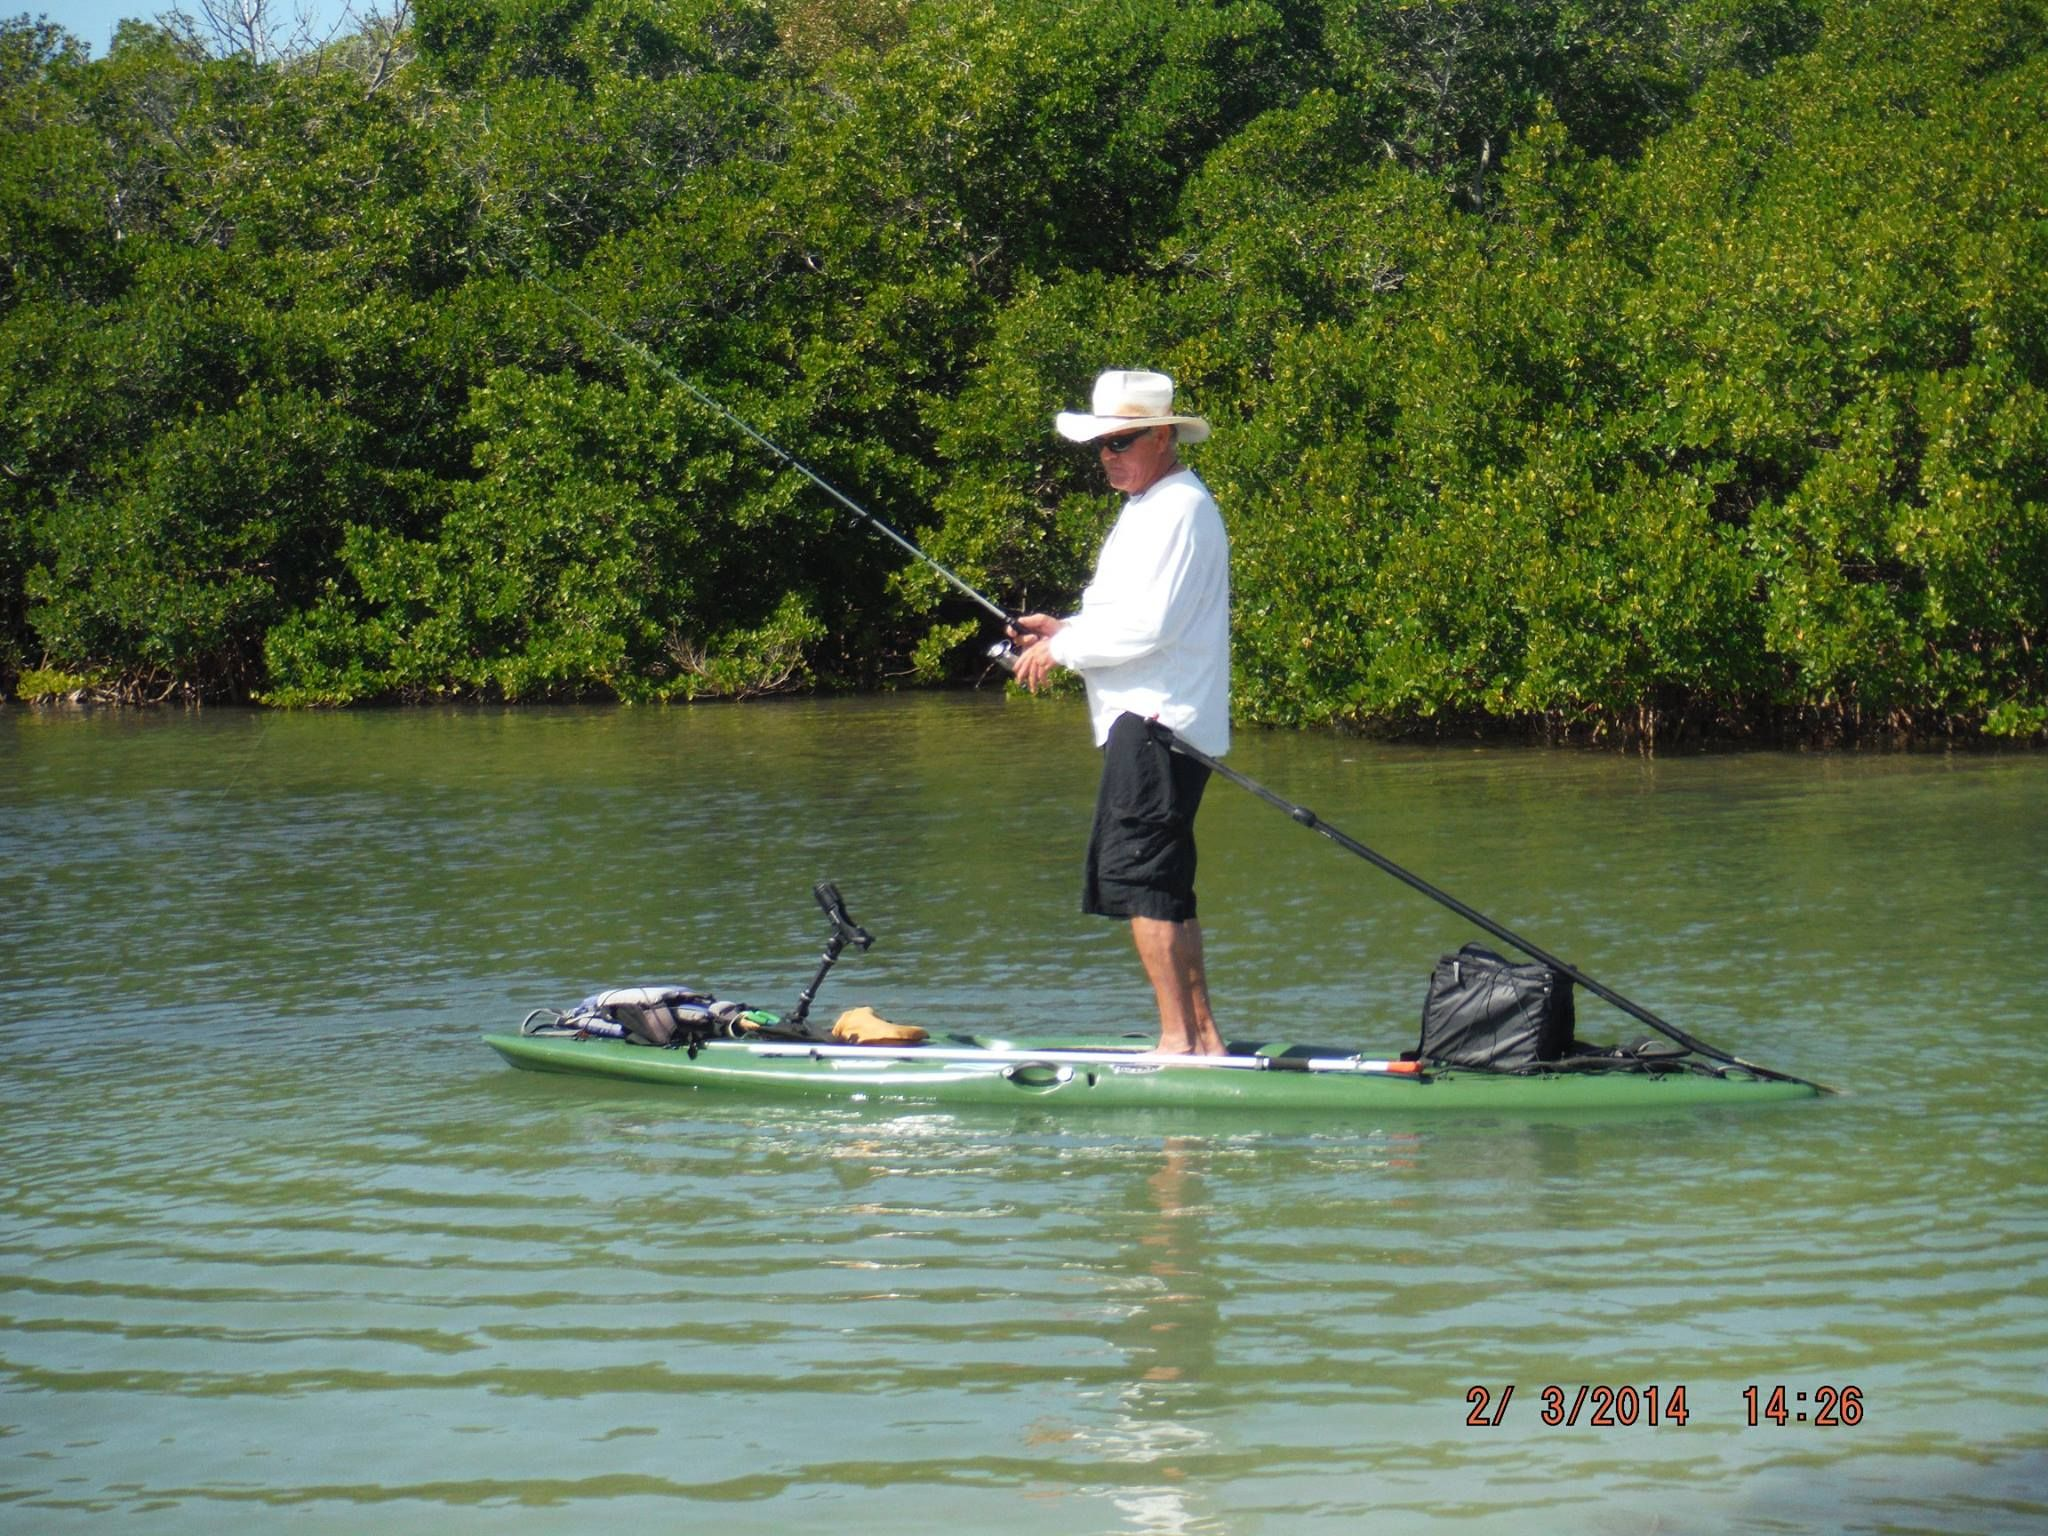 Sup sunday check out jamie h sup fishing on a kaku kayak for Paddle board fishing accessories